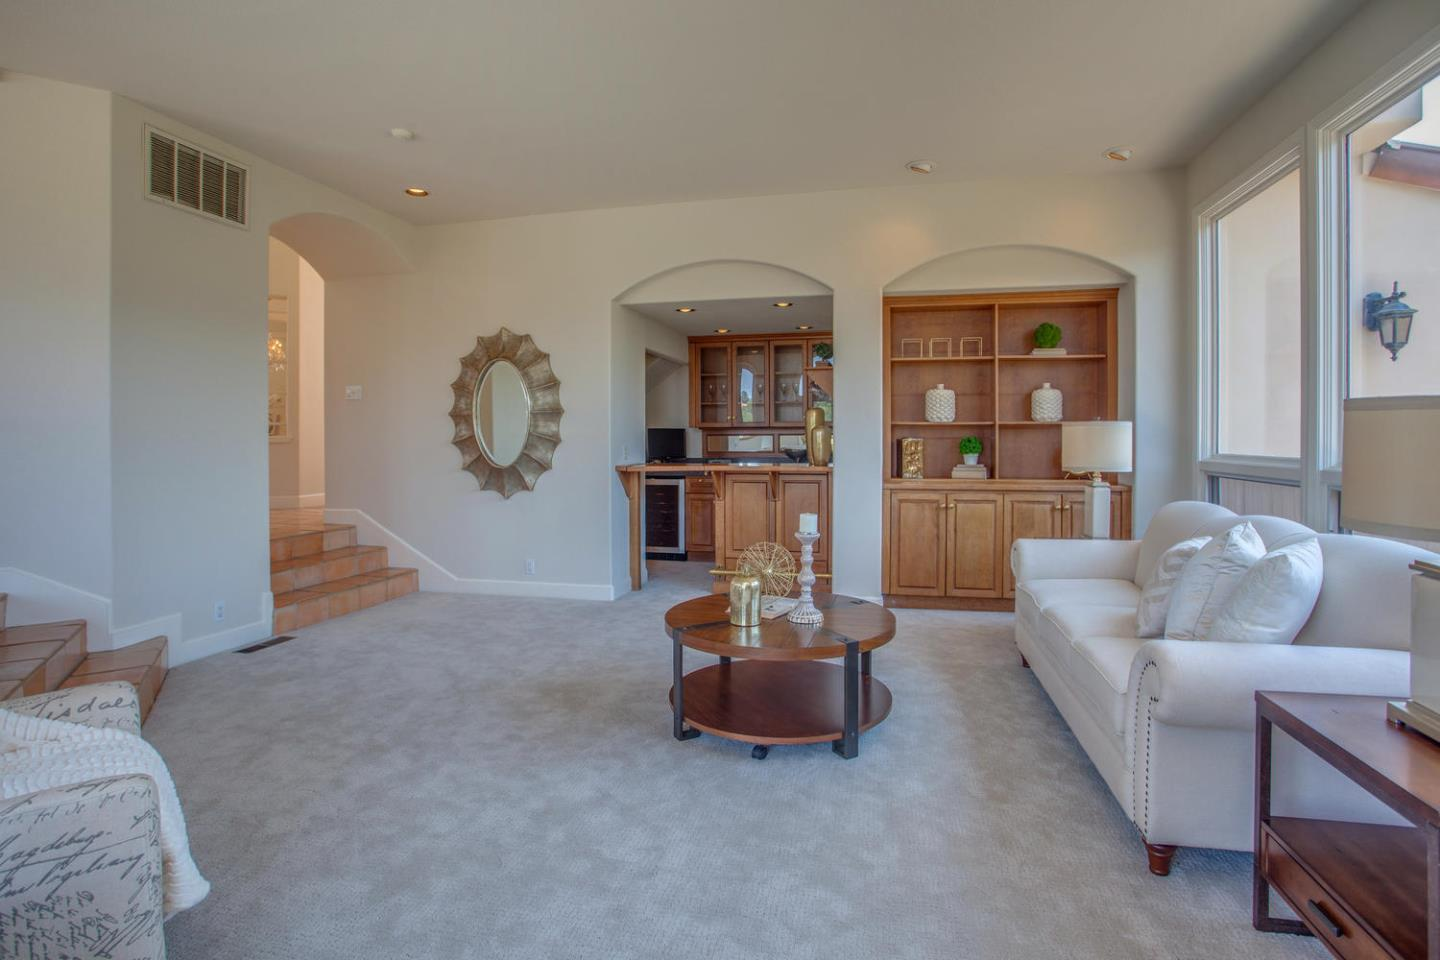 Additional photo for property listing at 12301 Vista Arroyo Court  Saratoga, California 95070 United States